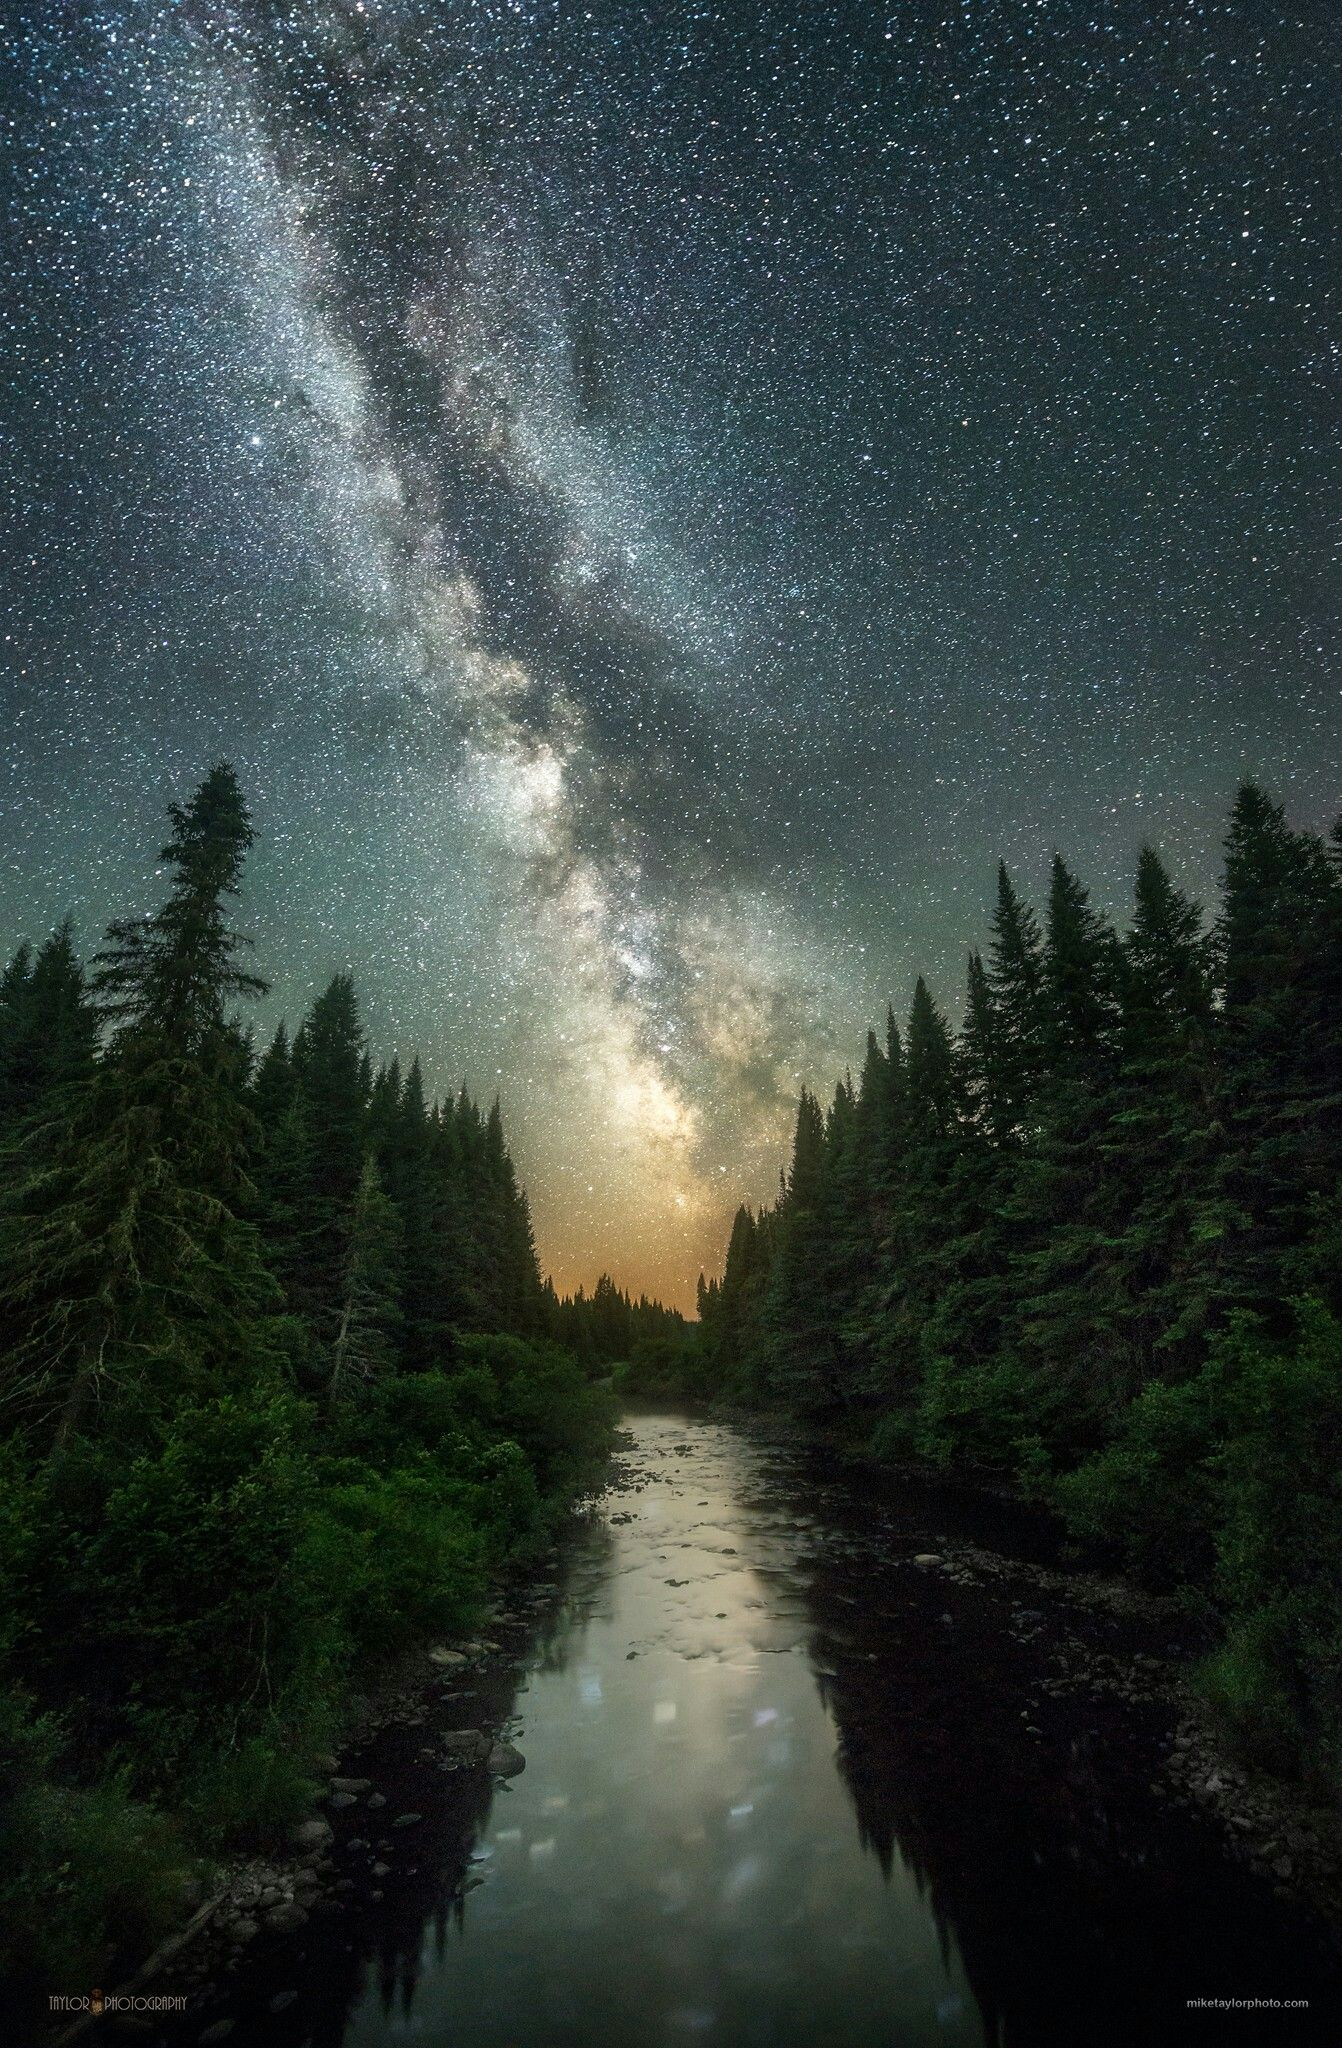 Connecticut River New Hampshire Night Sky Photography Night Landscape Night Skies